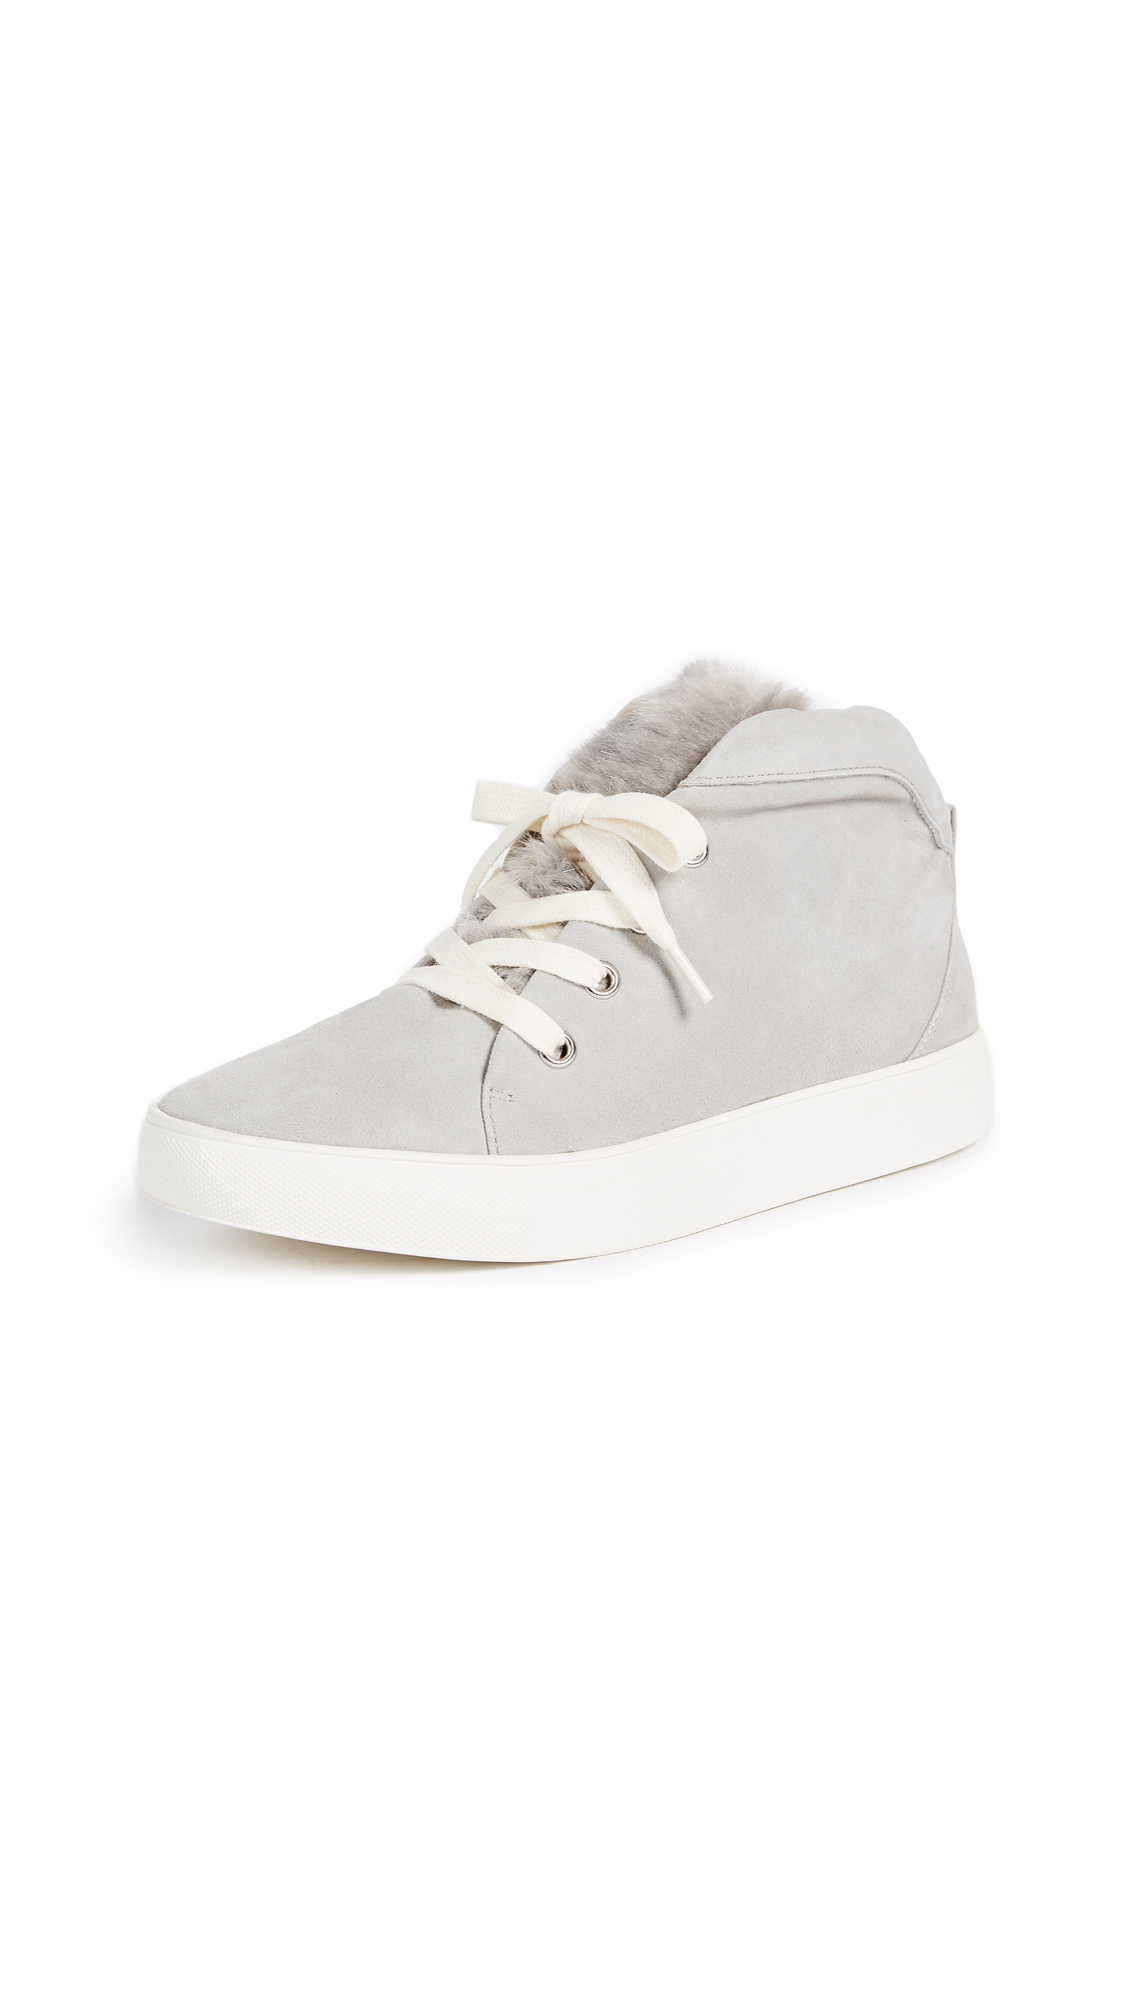 JAGGAR Lace Up Sneakers - Grey